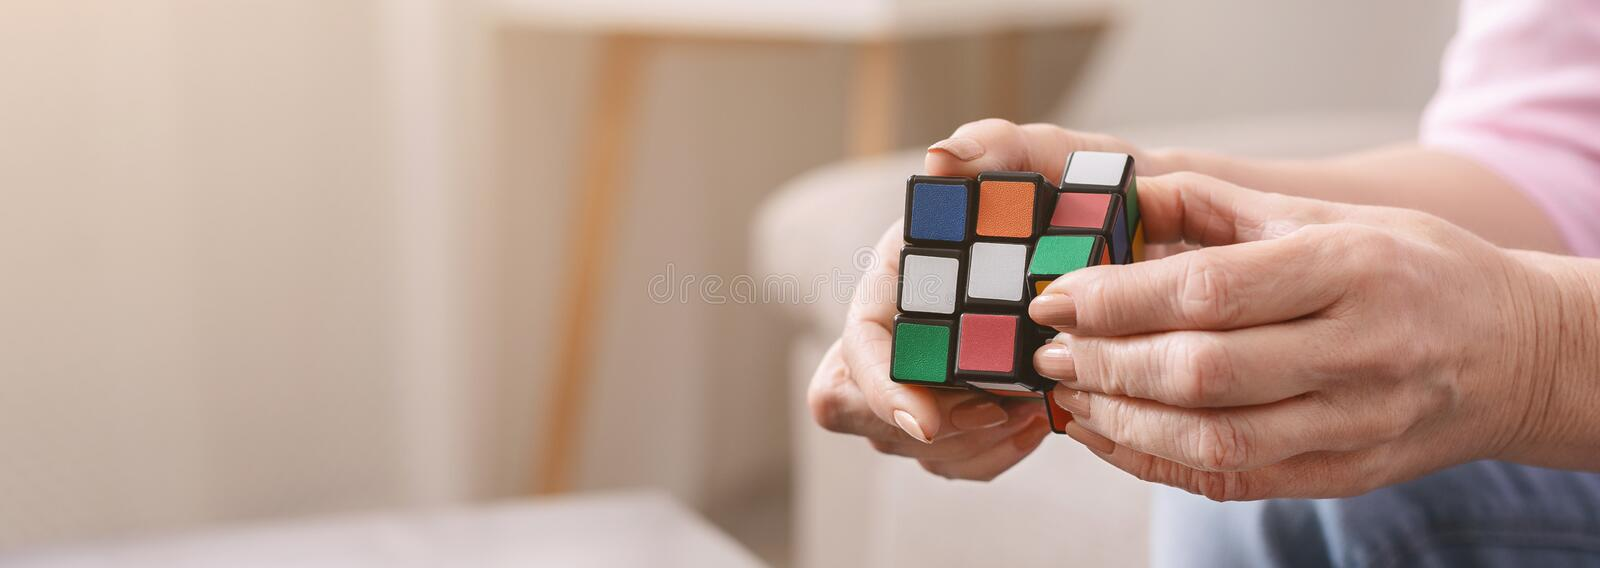 Old woman holding Rubik`s cube and playing with it stock image